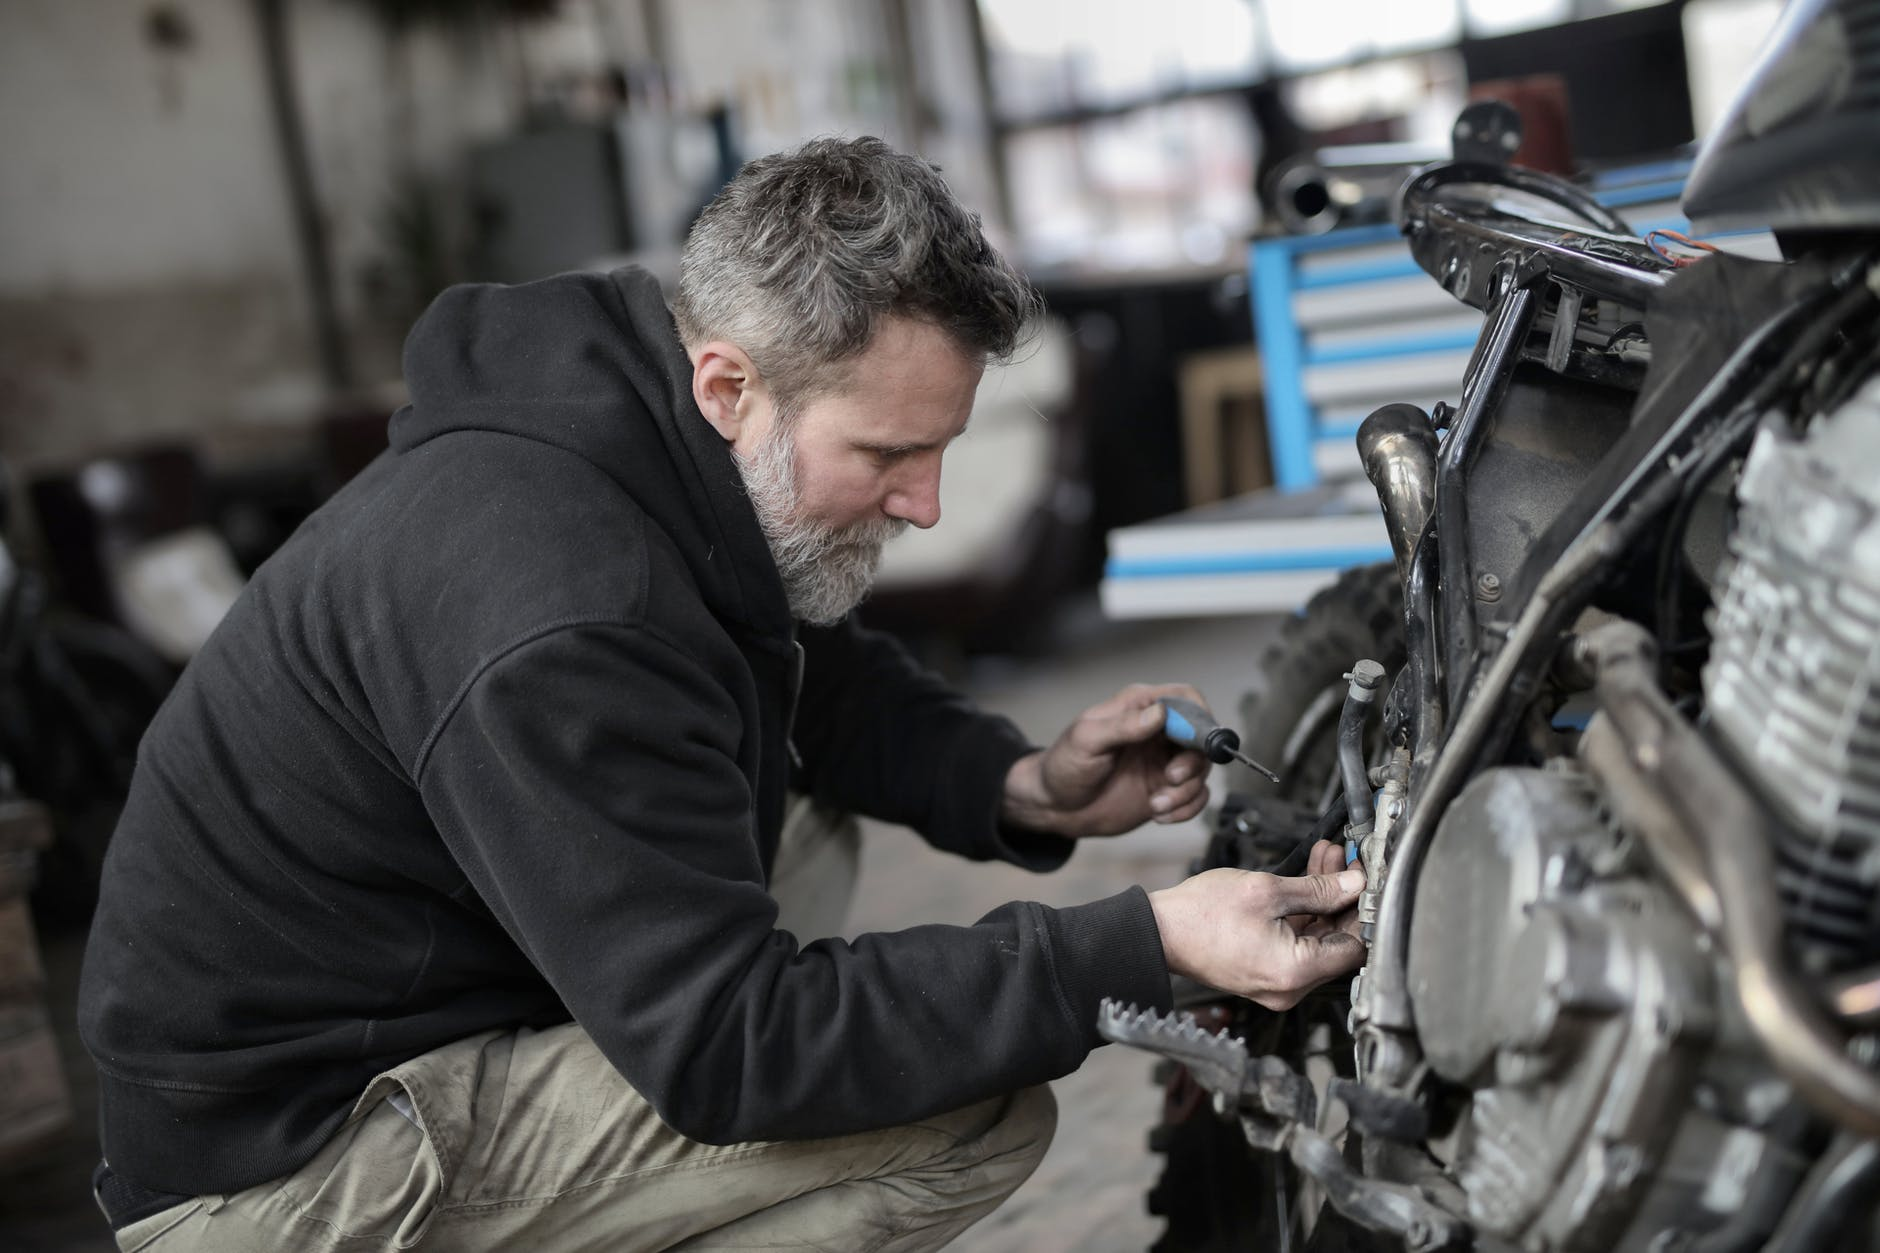 He kept his promise and worked as a mechanic.   Source: Pexels